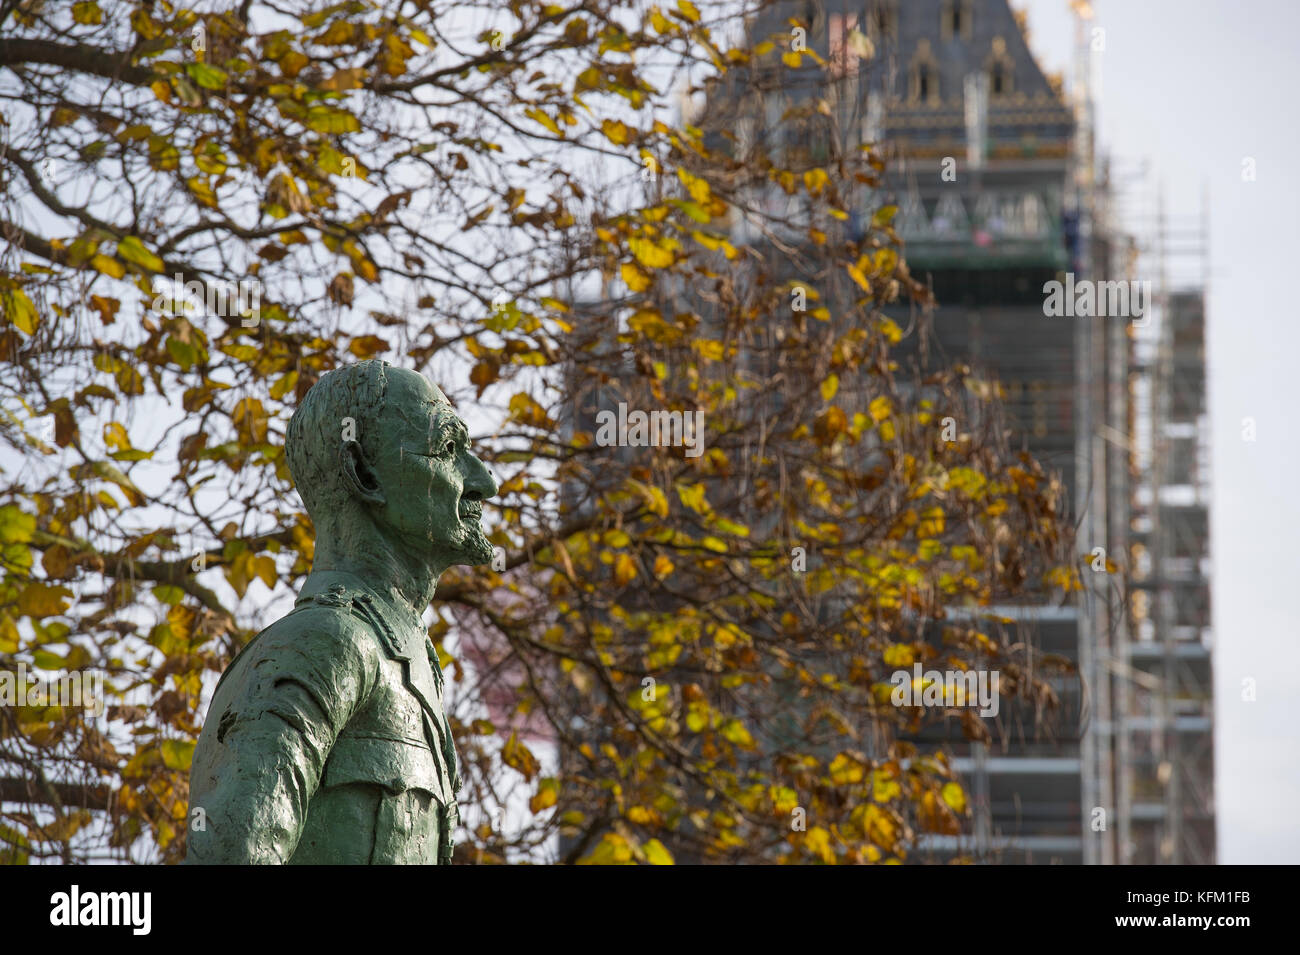 Westminster, London, UK. 30 October, 2017. Sunshine and Autumn colours around Westminster in central London in cool - Stock Image